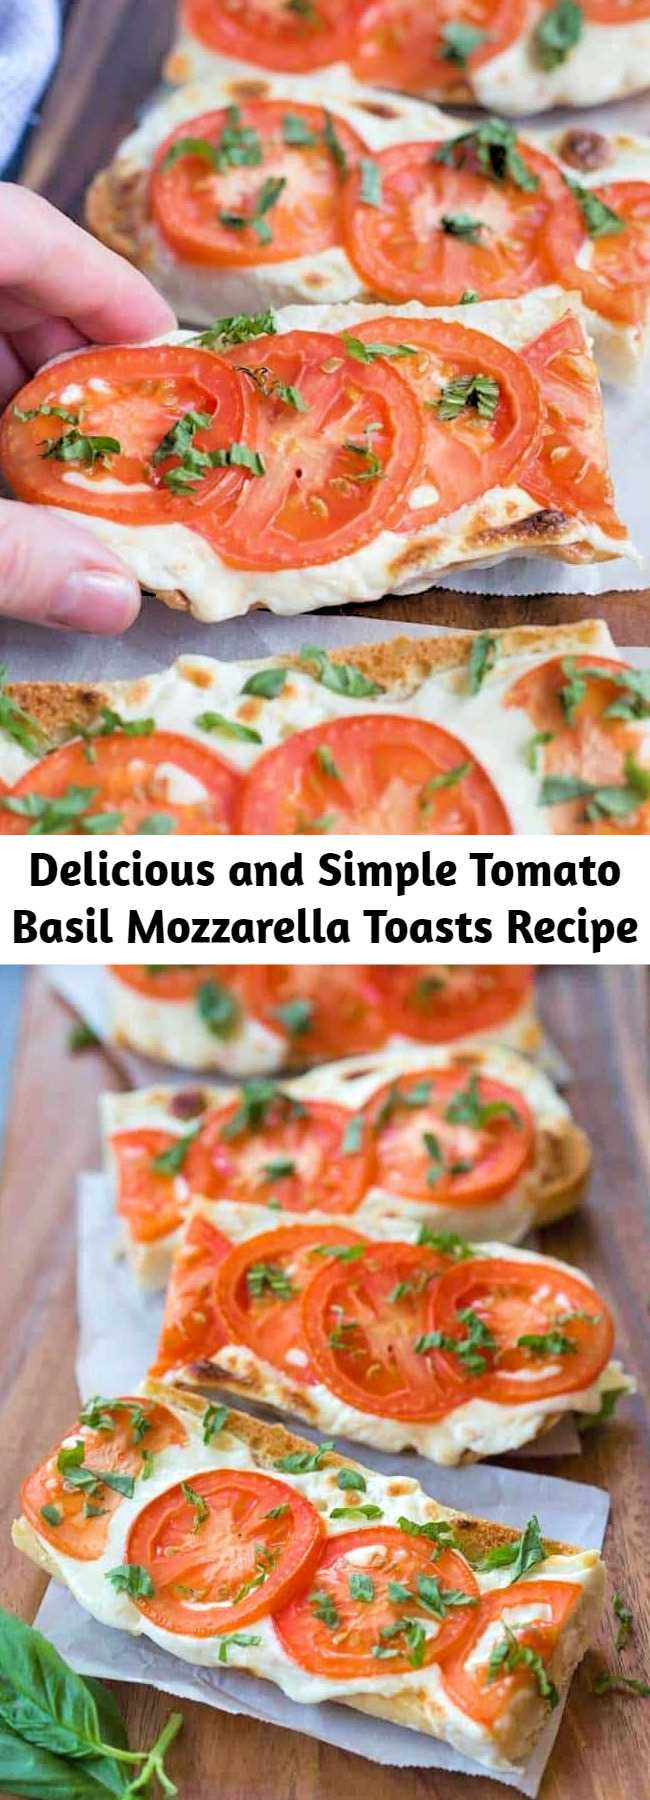 Delicious and Simple Tomato Basil Mozzarella Toasts Recipe - Everyone always LOVES these delicious and simple toasts. Serve them as a side dish or appetizer. A crusty baguette toasted with fresh mozzarella and tomato and garnished with basil. #tomato #basil #mozzarella #toast #easy #best